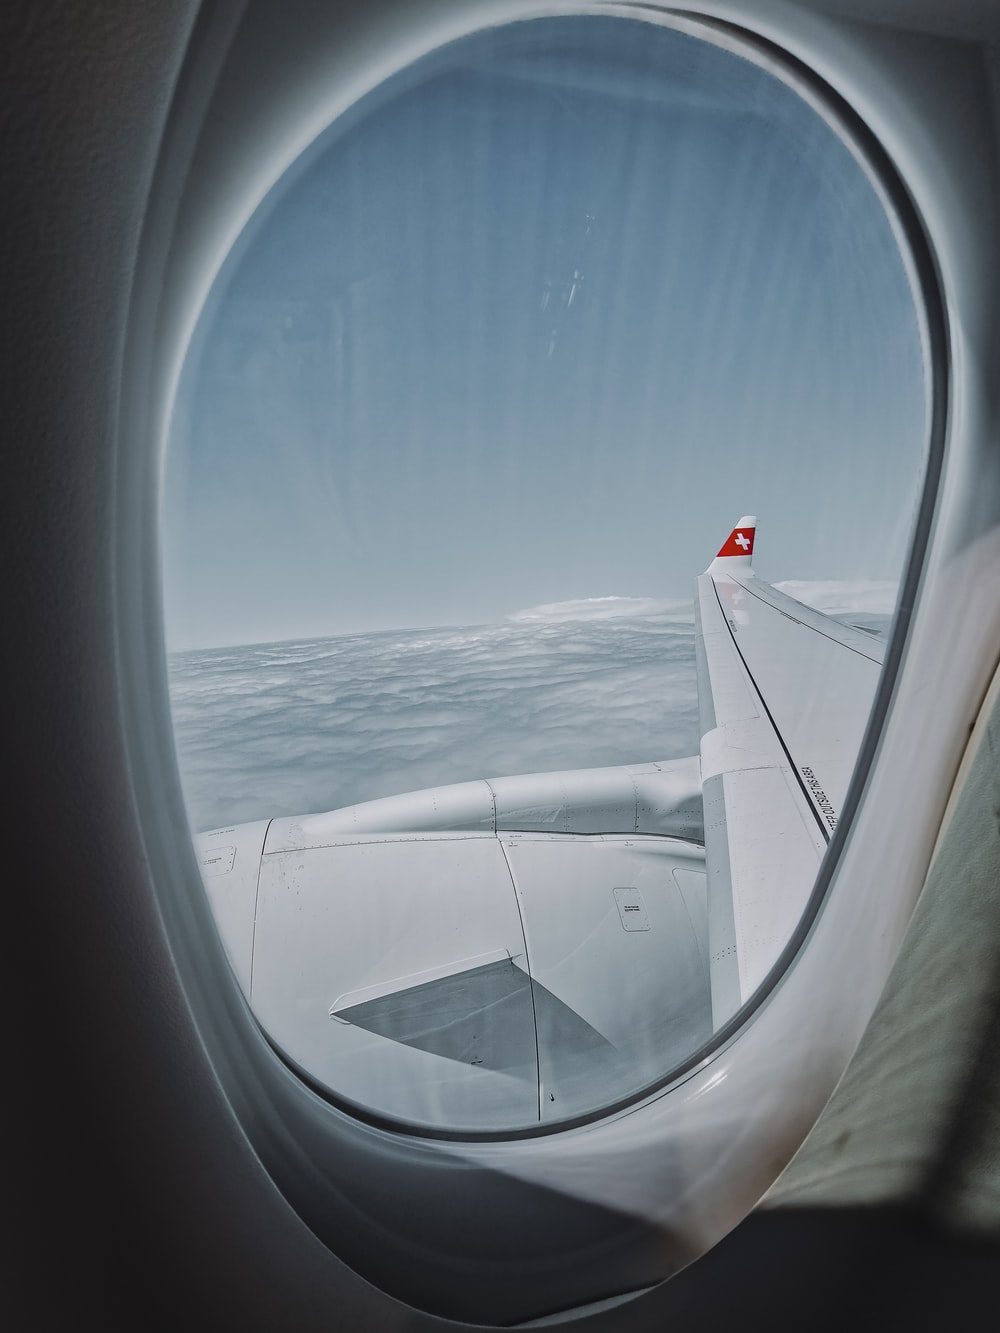 white airplane wing over the sea during daytime